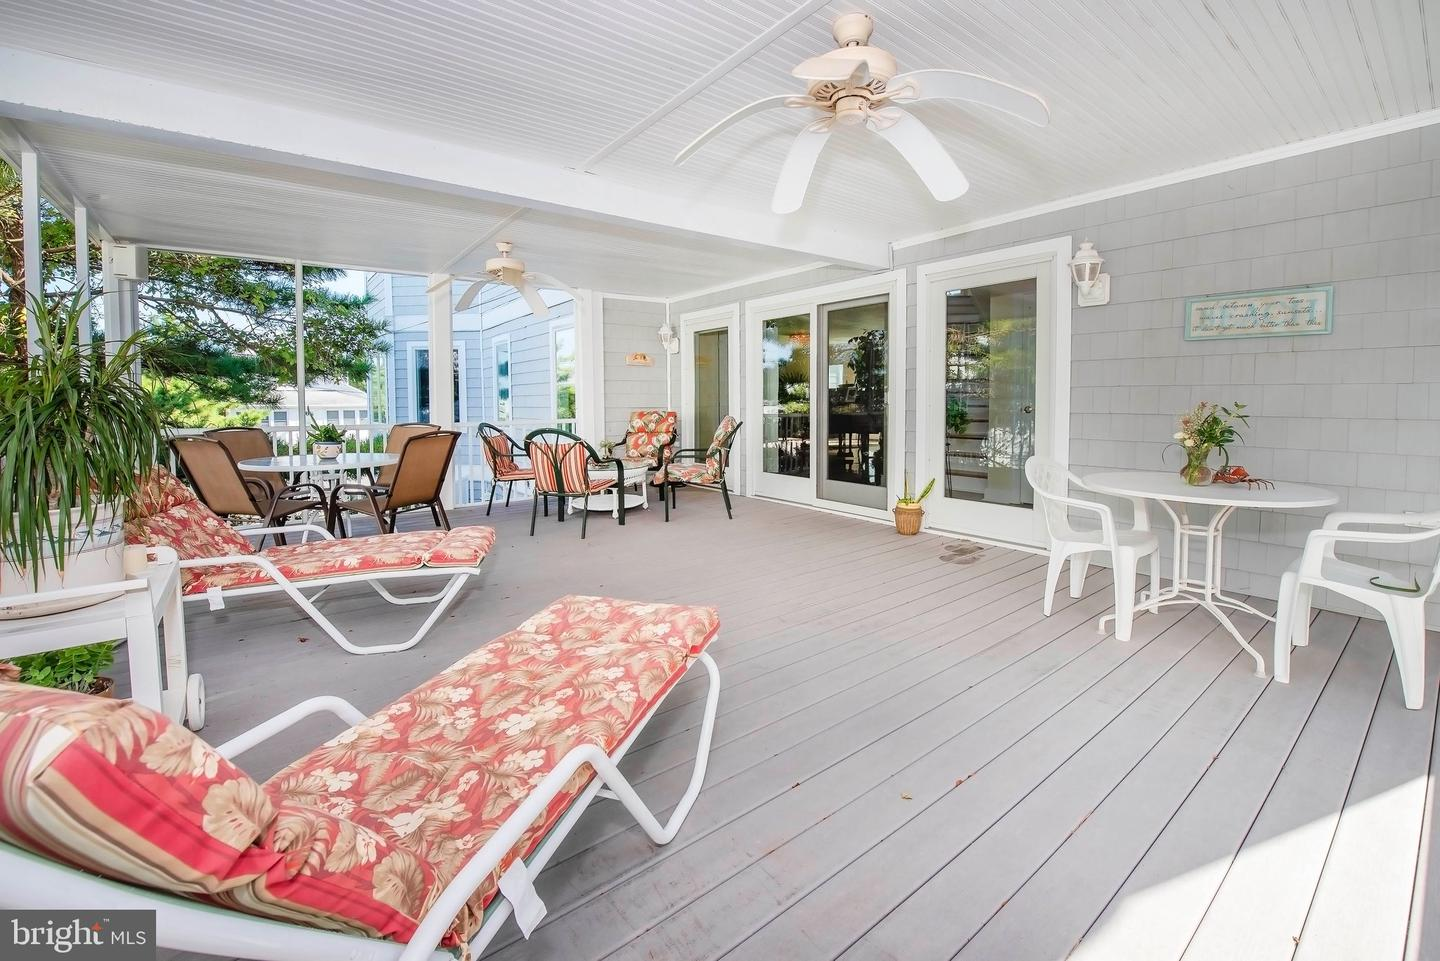 DESU147280-302007865027-2019-08-31-13-42-10 810 Bunting Ave | Fenwick Island, De Real Estate For Sale | MLS# Desu147280  - Suzanne Macnab